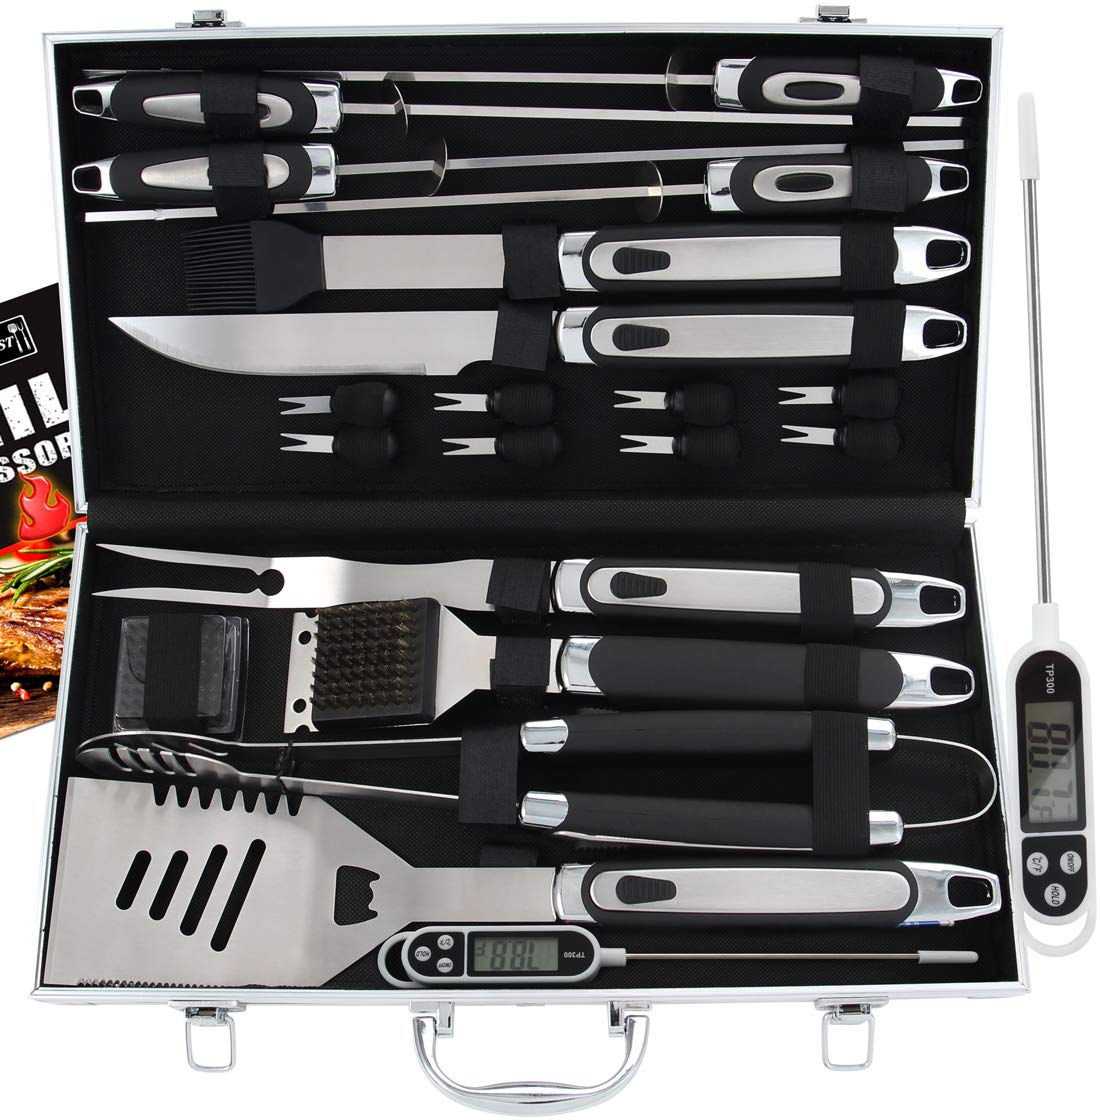 ROMANTICIST 21pc BBQ Grill Accessories Set with Thermometer - The Very Best Grill Gift on Birthday Wedding - Heavy Duty Stainless Steel Grill Utensils with Non-Slip Handle in Aluminum Case